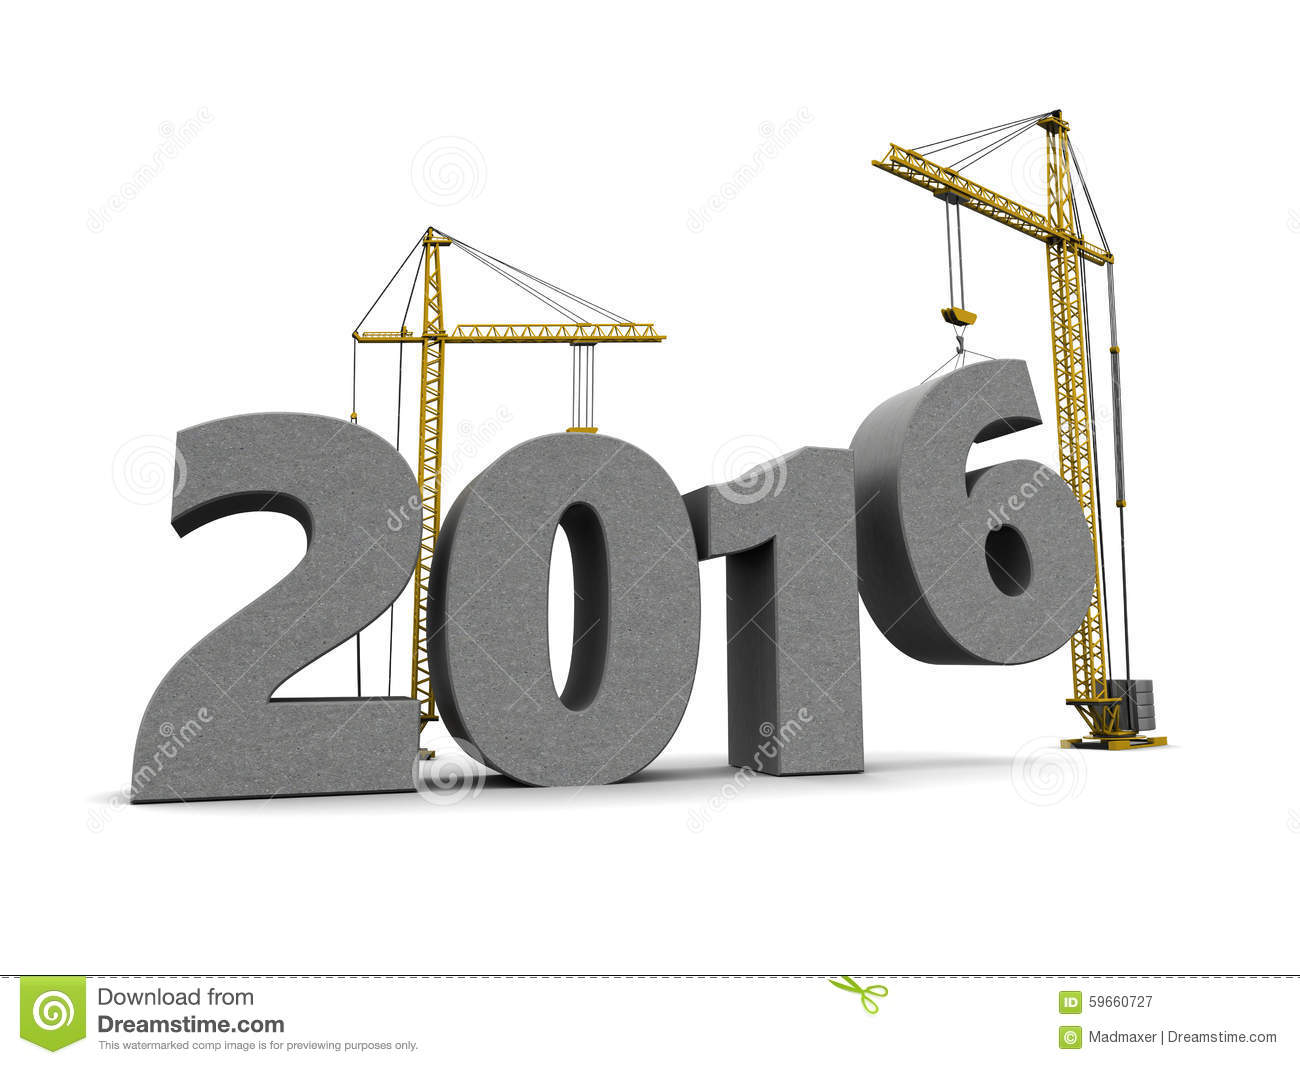 2016 new year stock illustration illustration of built 59660727